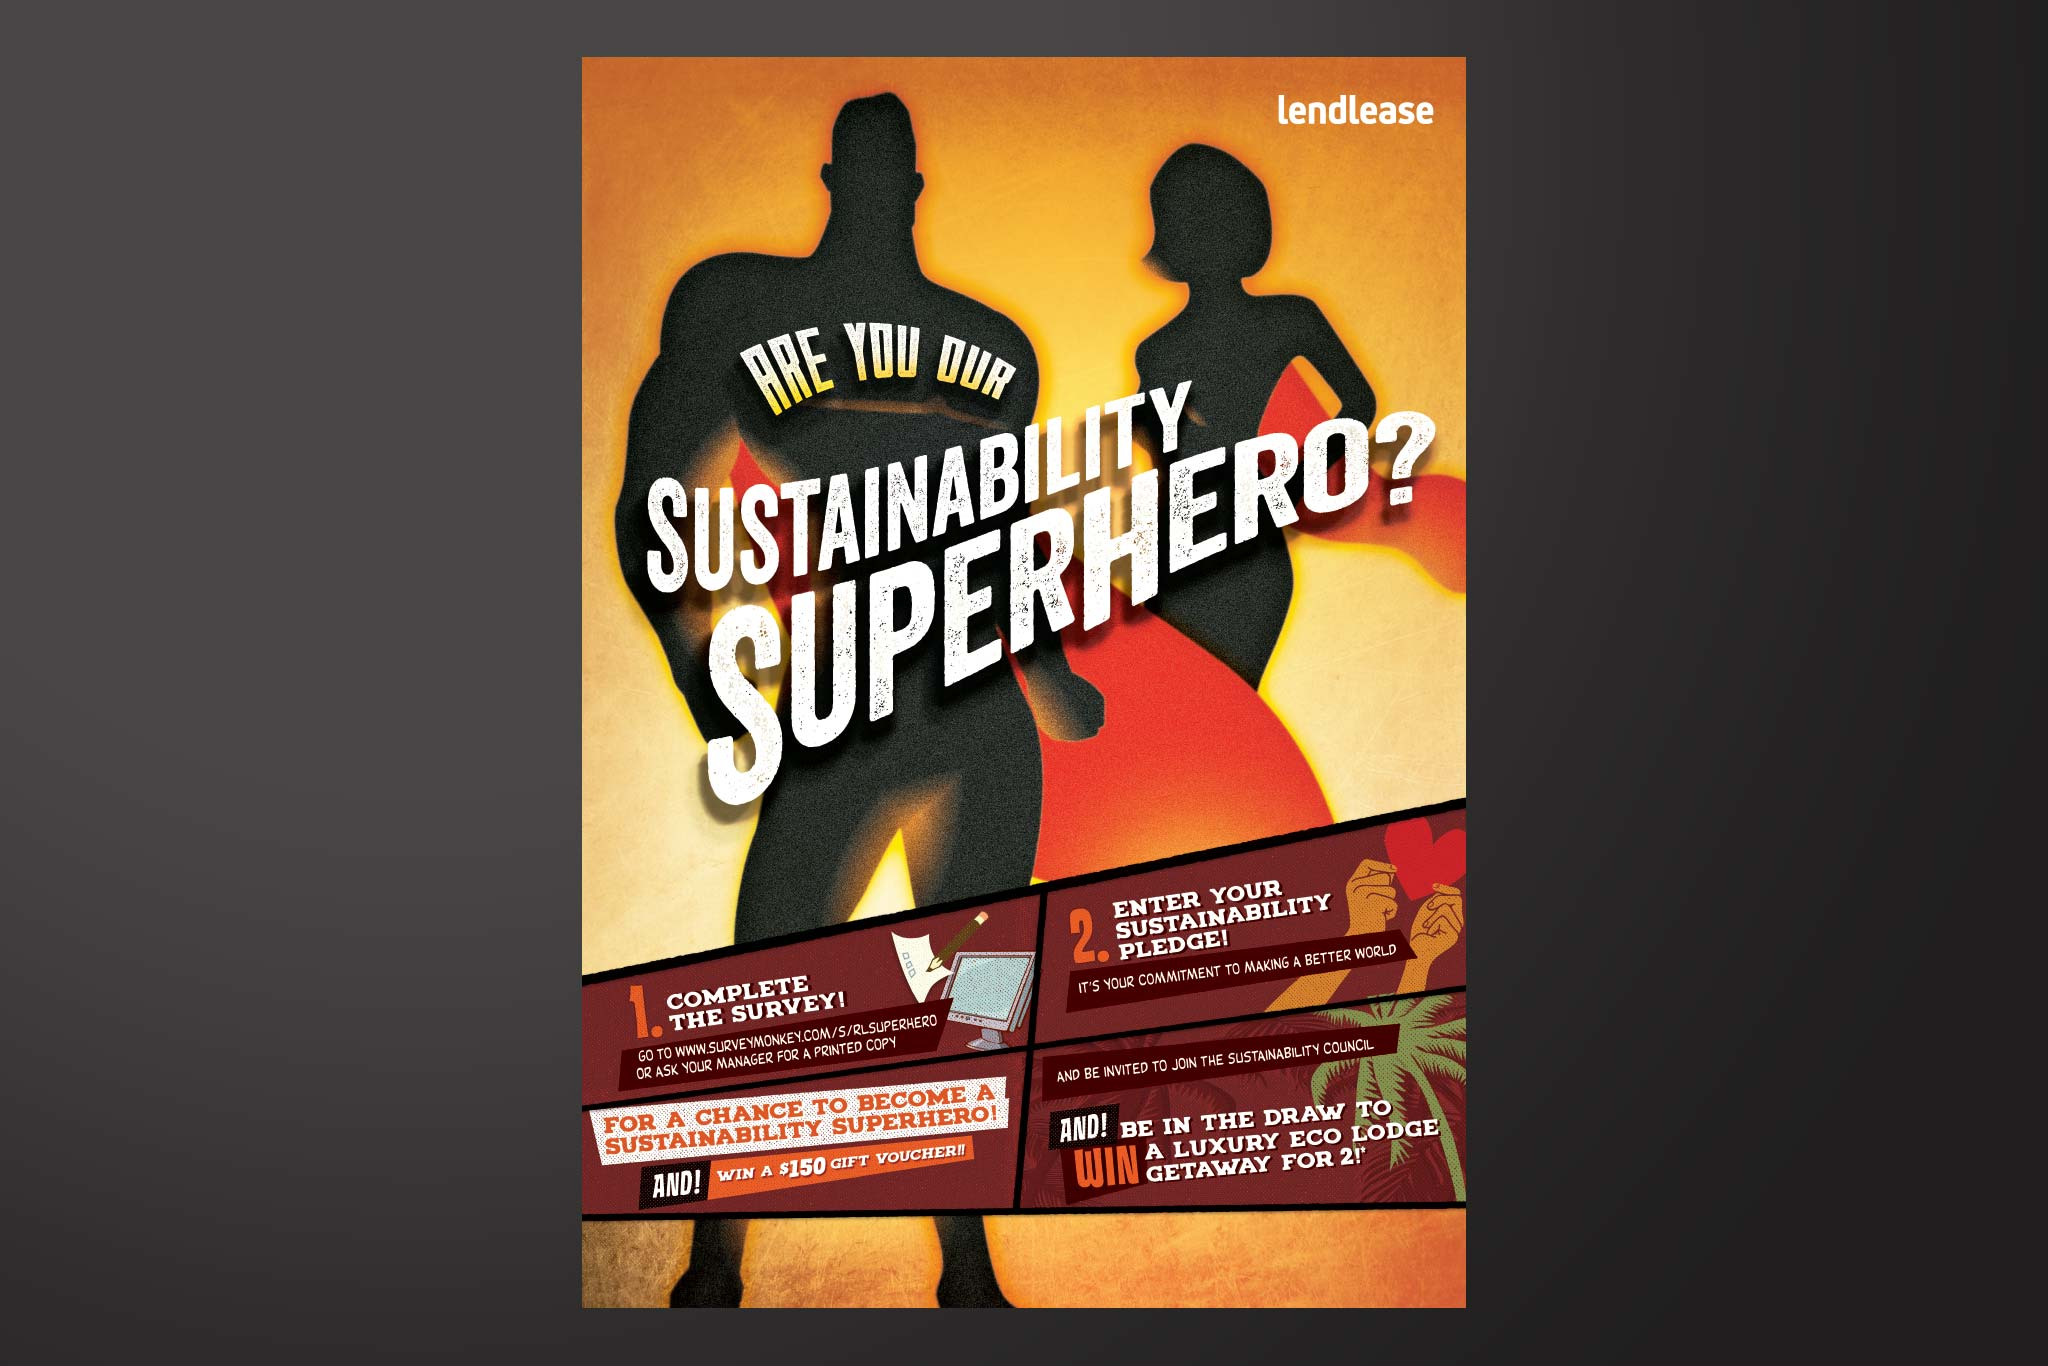 lendlease-sustainability-superhero_1